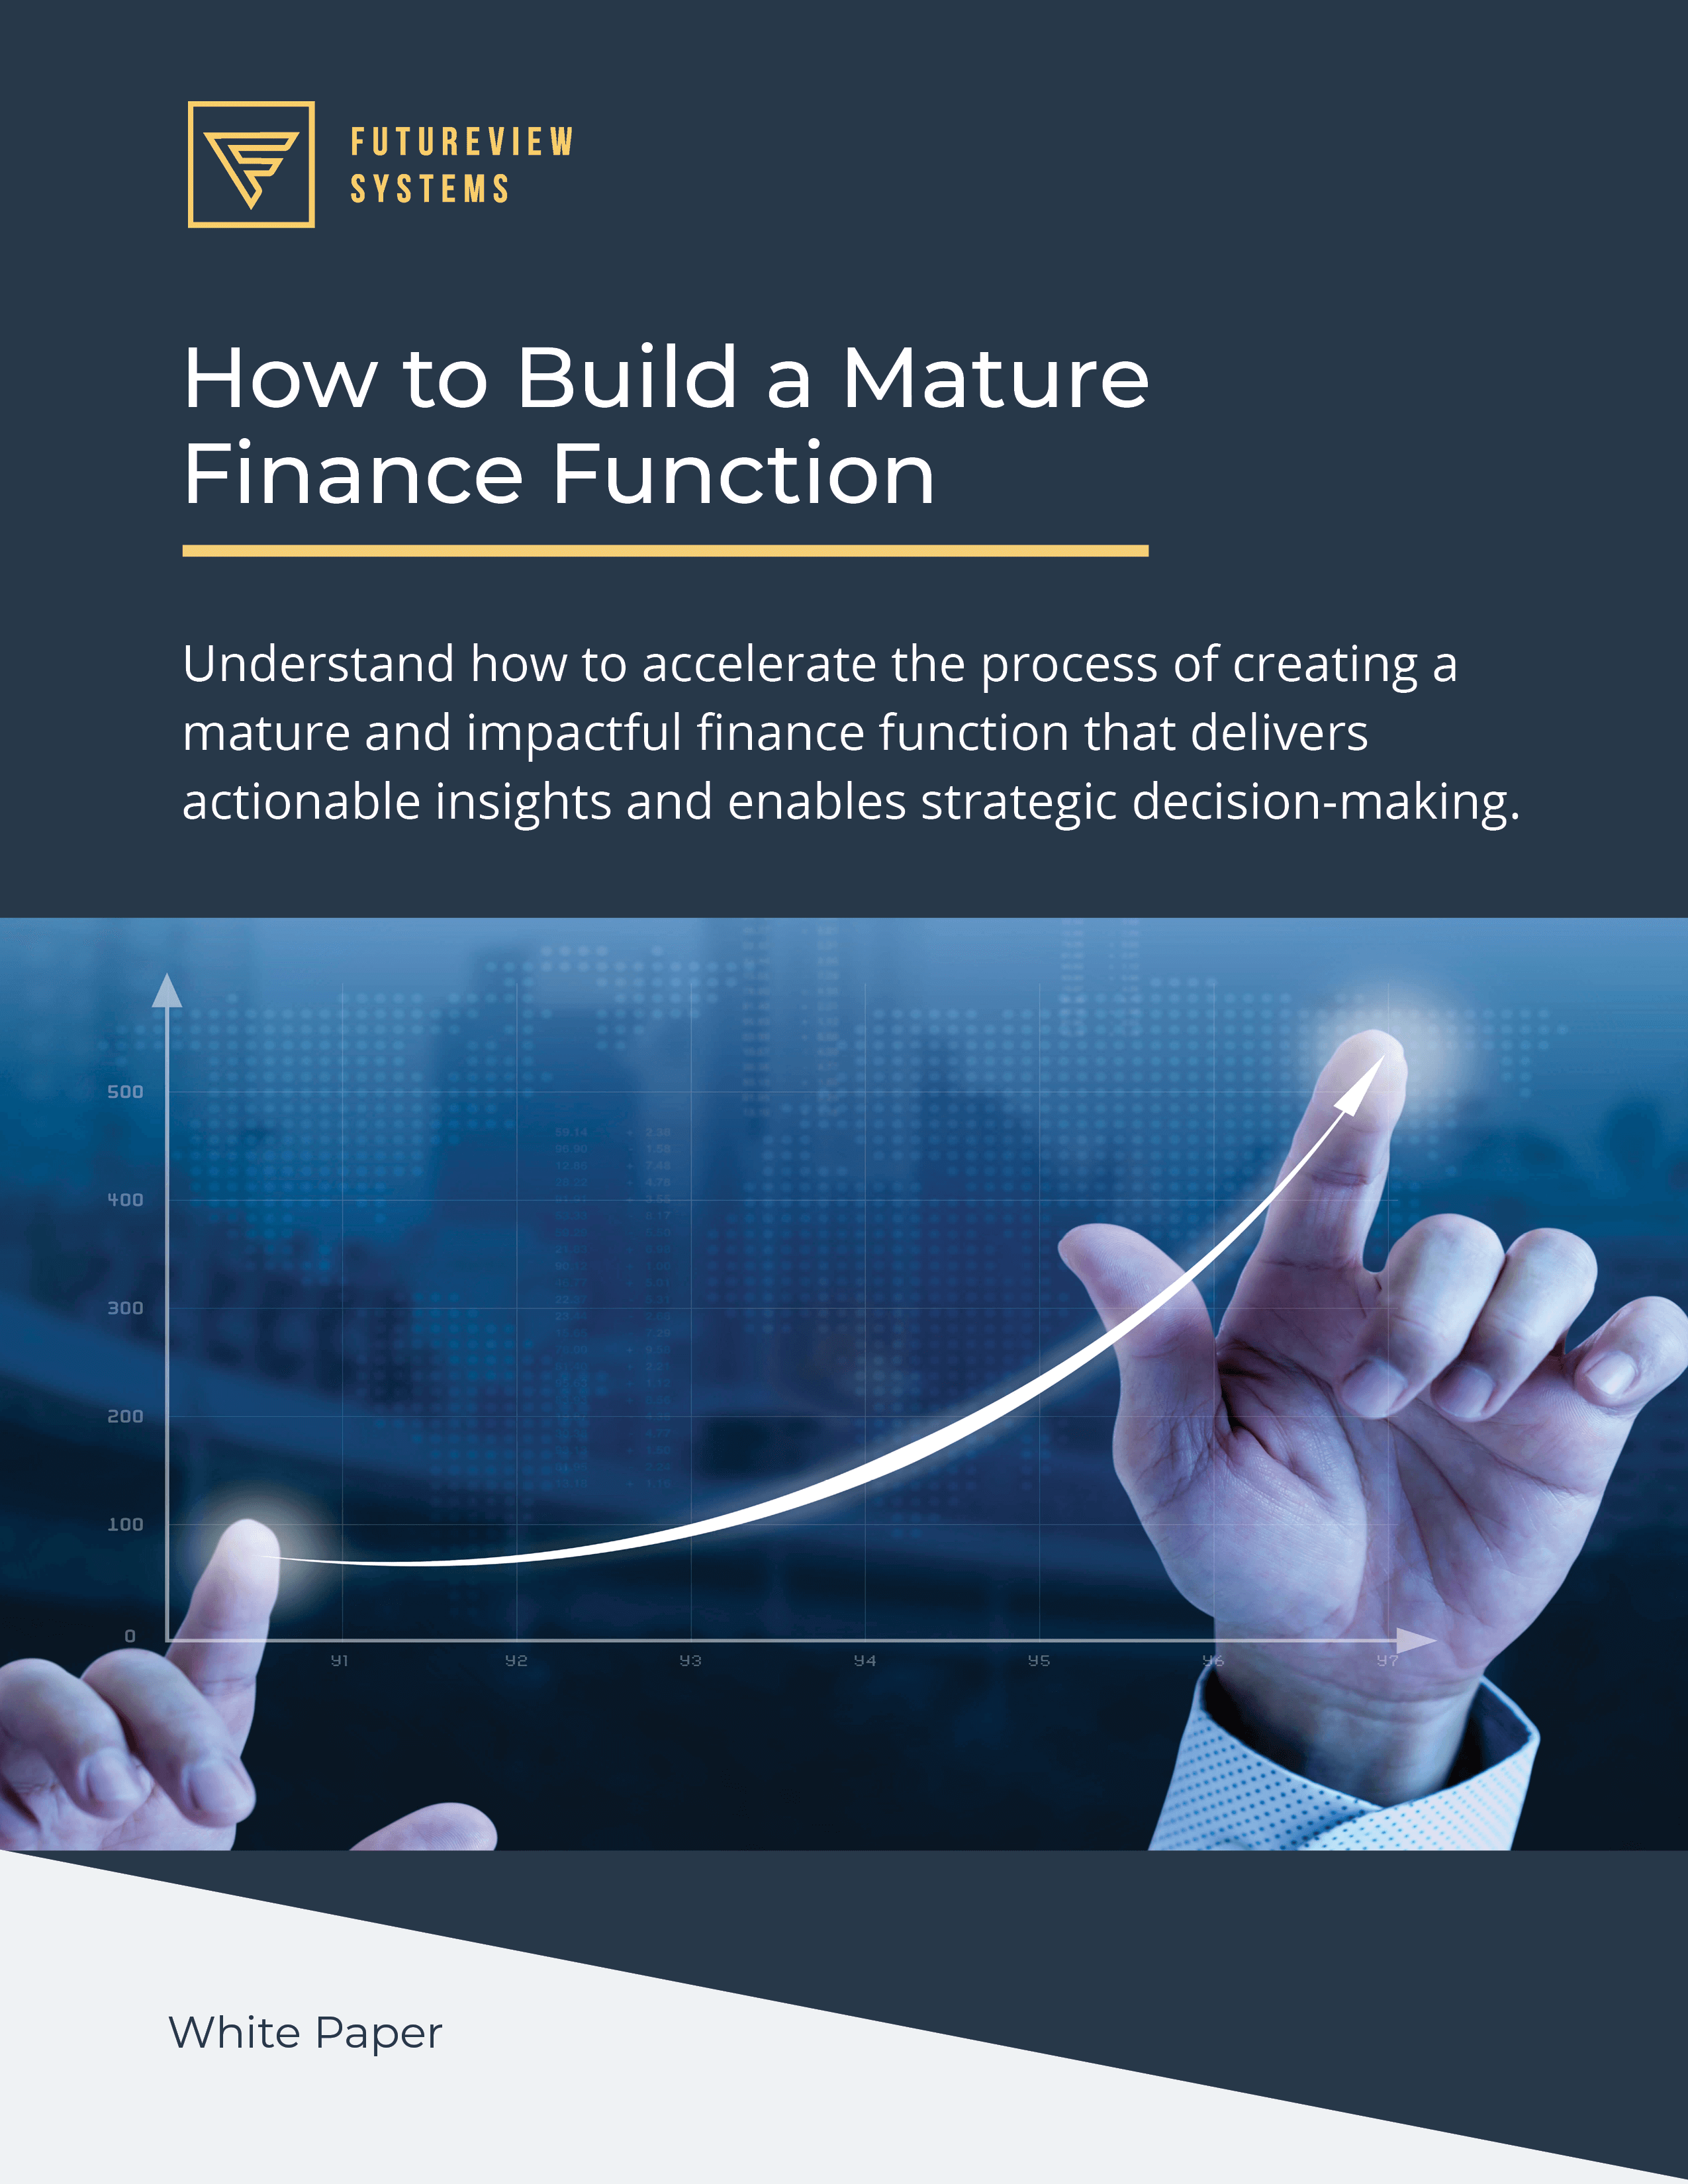 How to Build a Mature Finance Function